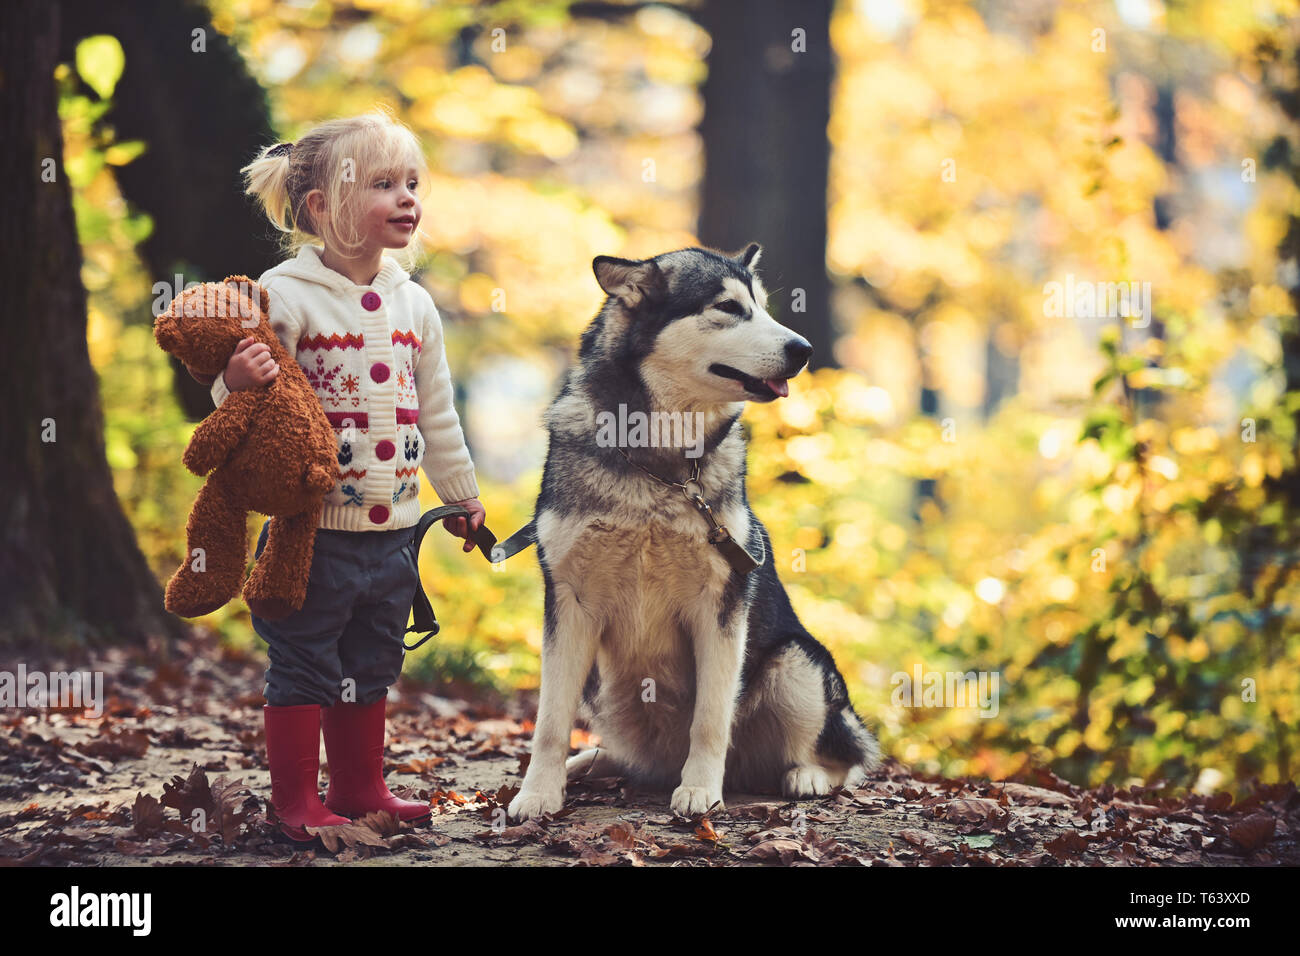 Dog and little girl in autumn forest. Dog husky with child on fresh air outdoor - Stock Image